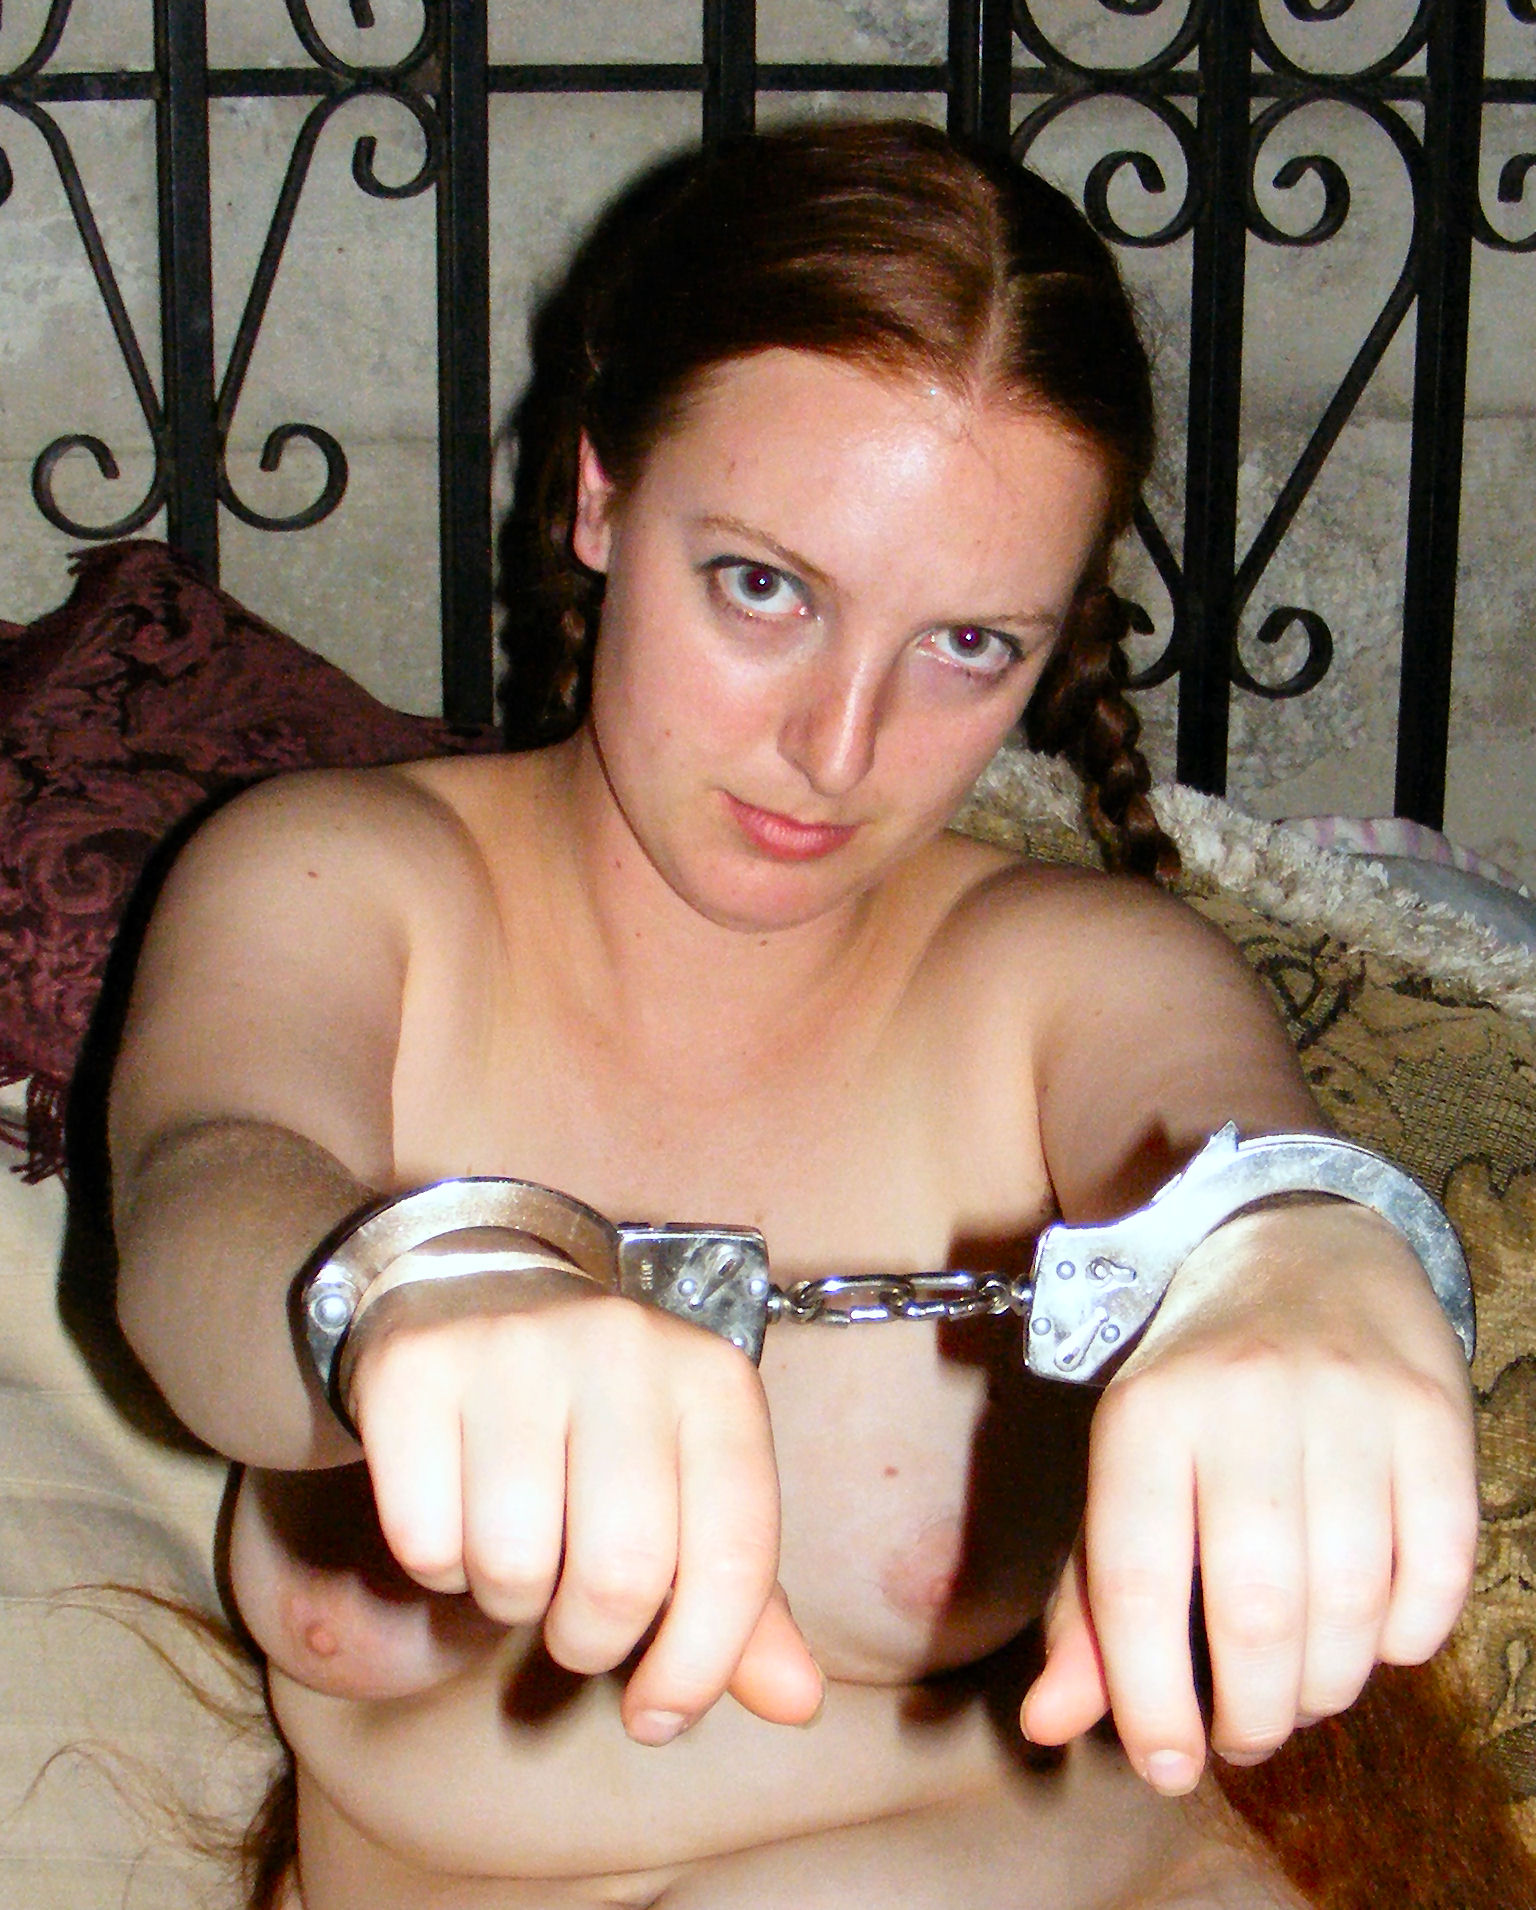 Consider, Naked girls in cuffs